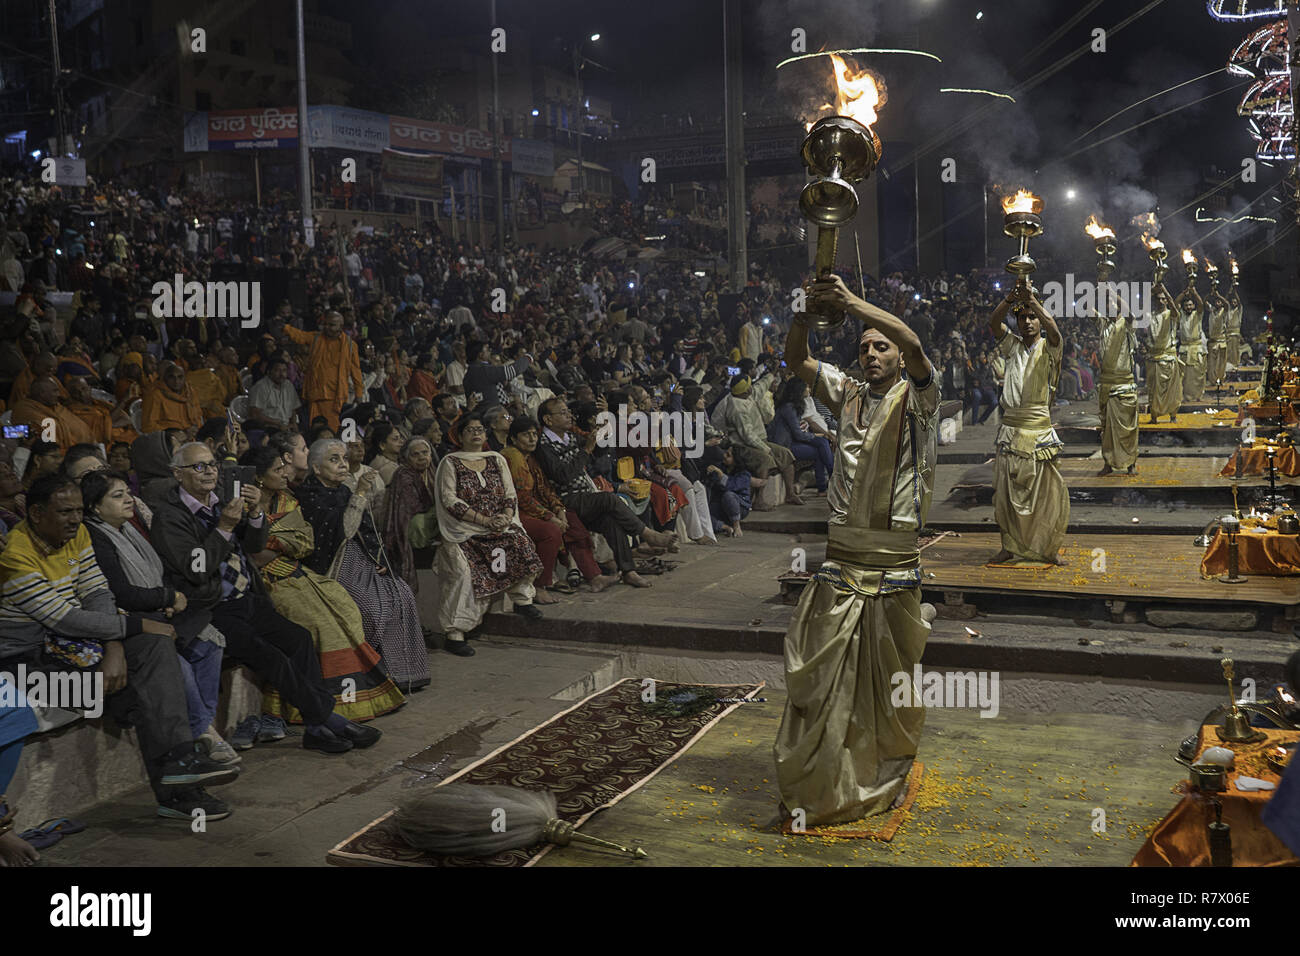 July 24, 2018 - Varanasi, Uttar Pradesh, India - Hindu priests seen performing at the Aarit ceremony on the banks of the Ganges river..Varanasi is a city in the northern Indian state of Uttar Pradesh dating to the 11th century B.C. Regarded as the spiritual capital of India, the city draws Hindu pilgrims who bathe in the Ganges River's sacred waters and perform funeral rites. The river is dedicated to the Hindu god Shiva. (Credit Image: © Enzo Tomasiello/SOPA Images via ZUMA Wire) - Stock Image